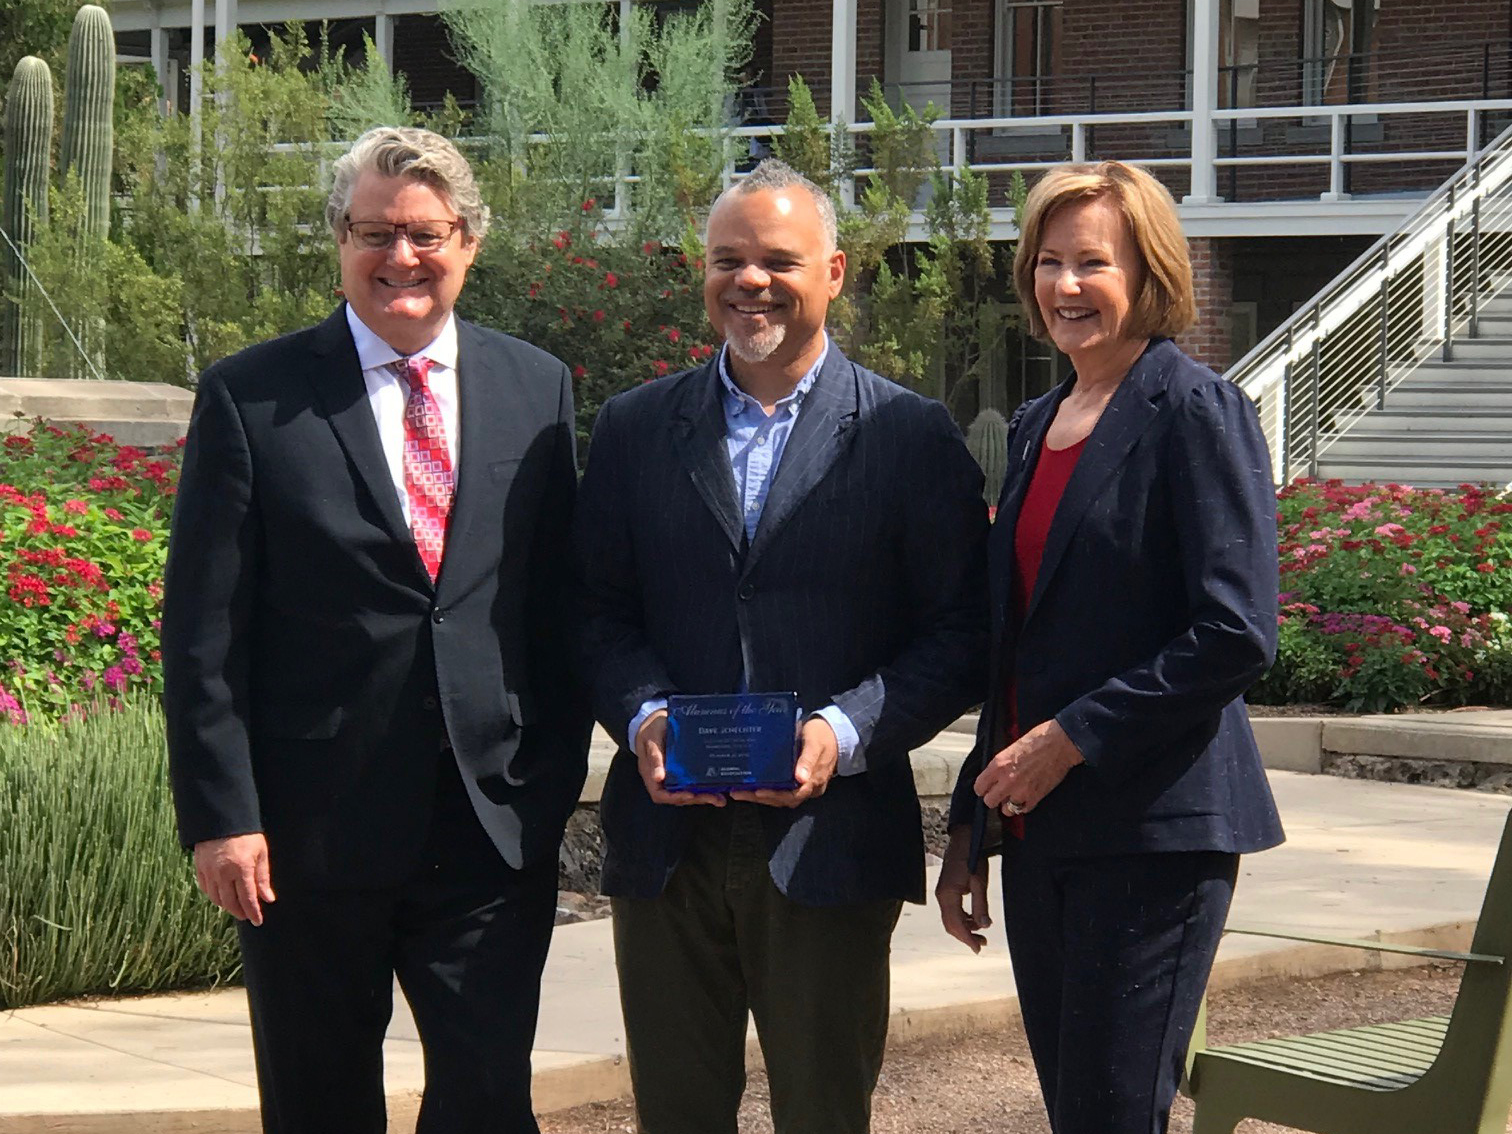 SBS Alumnus of the Year Dave Schechter (center) with John Paul Jones III, dean of the College of Social and Behavioral Sciences, and Melinda Burke, president of the UA Alumni Association.